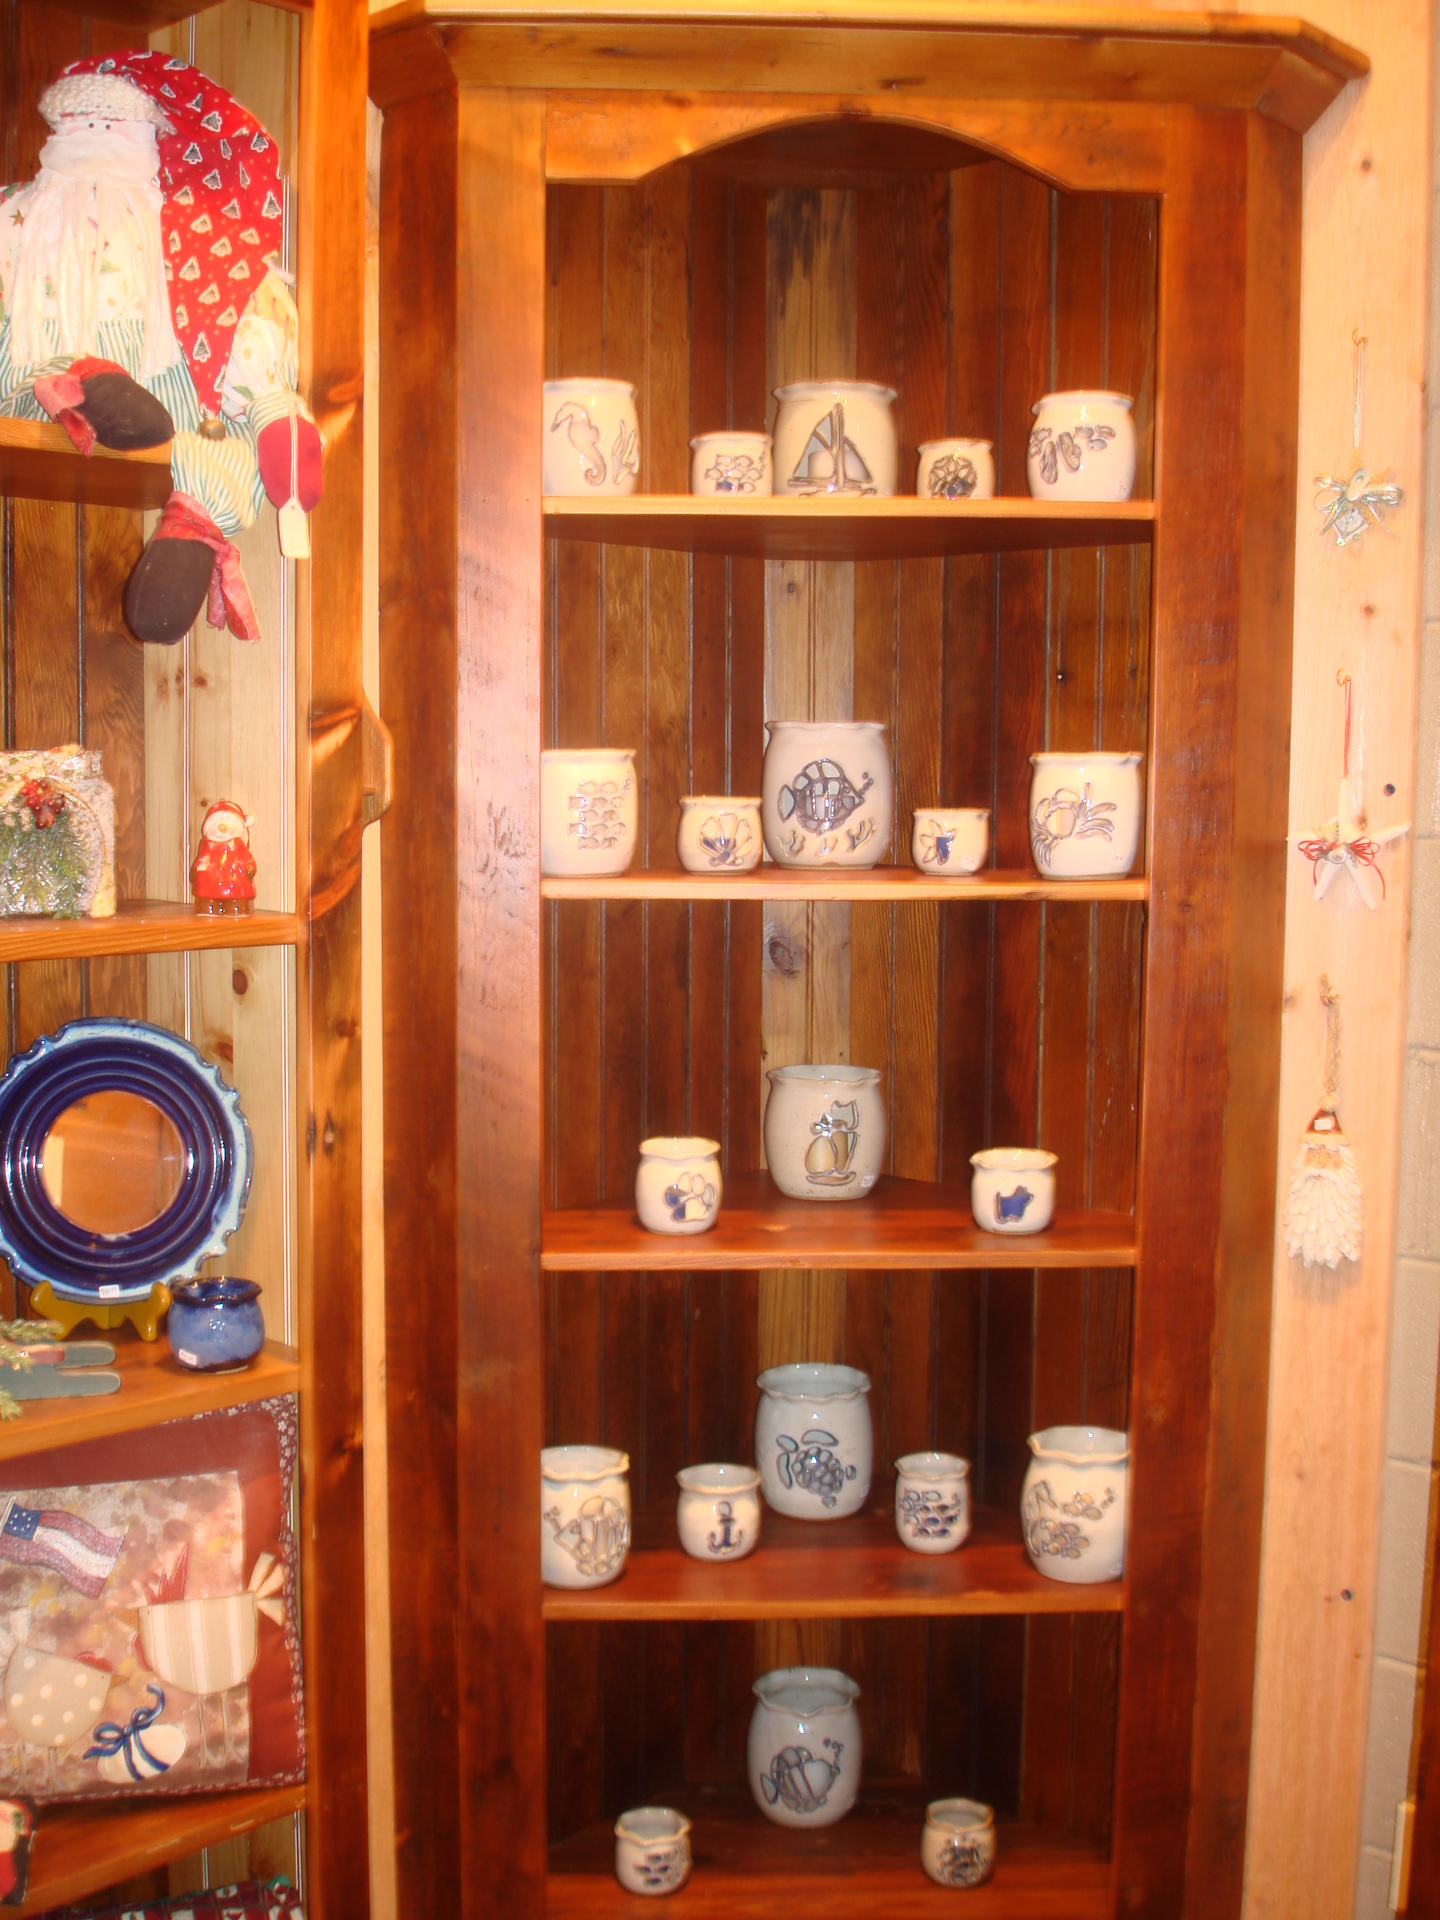 Shelves filled with hand made & hand painted pottery